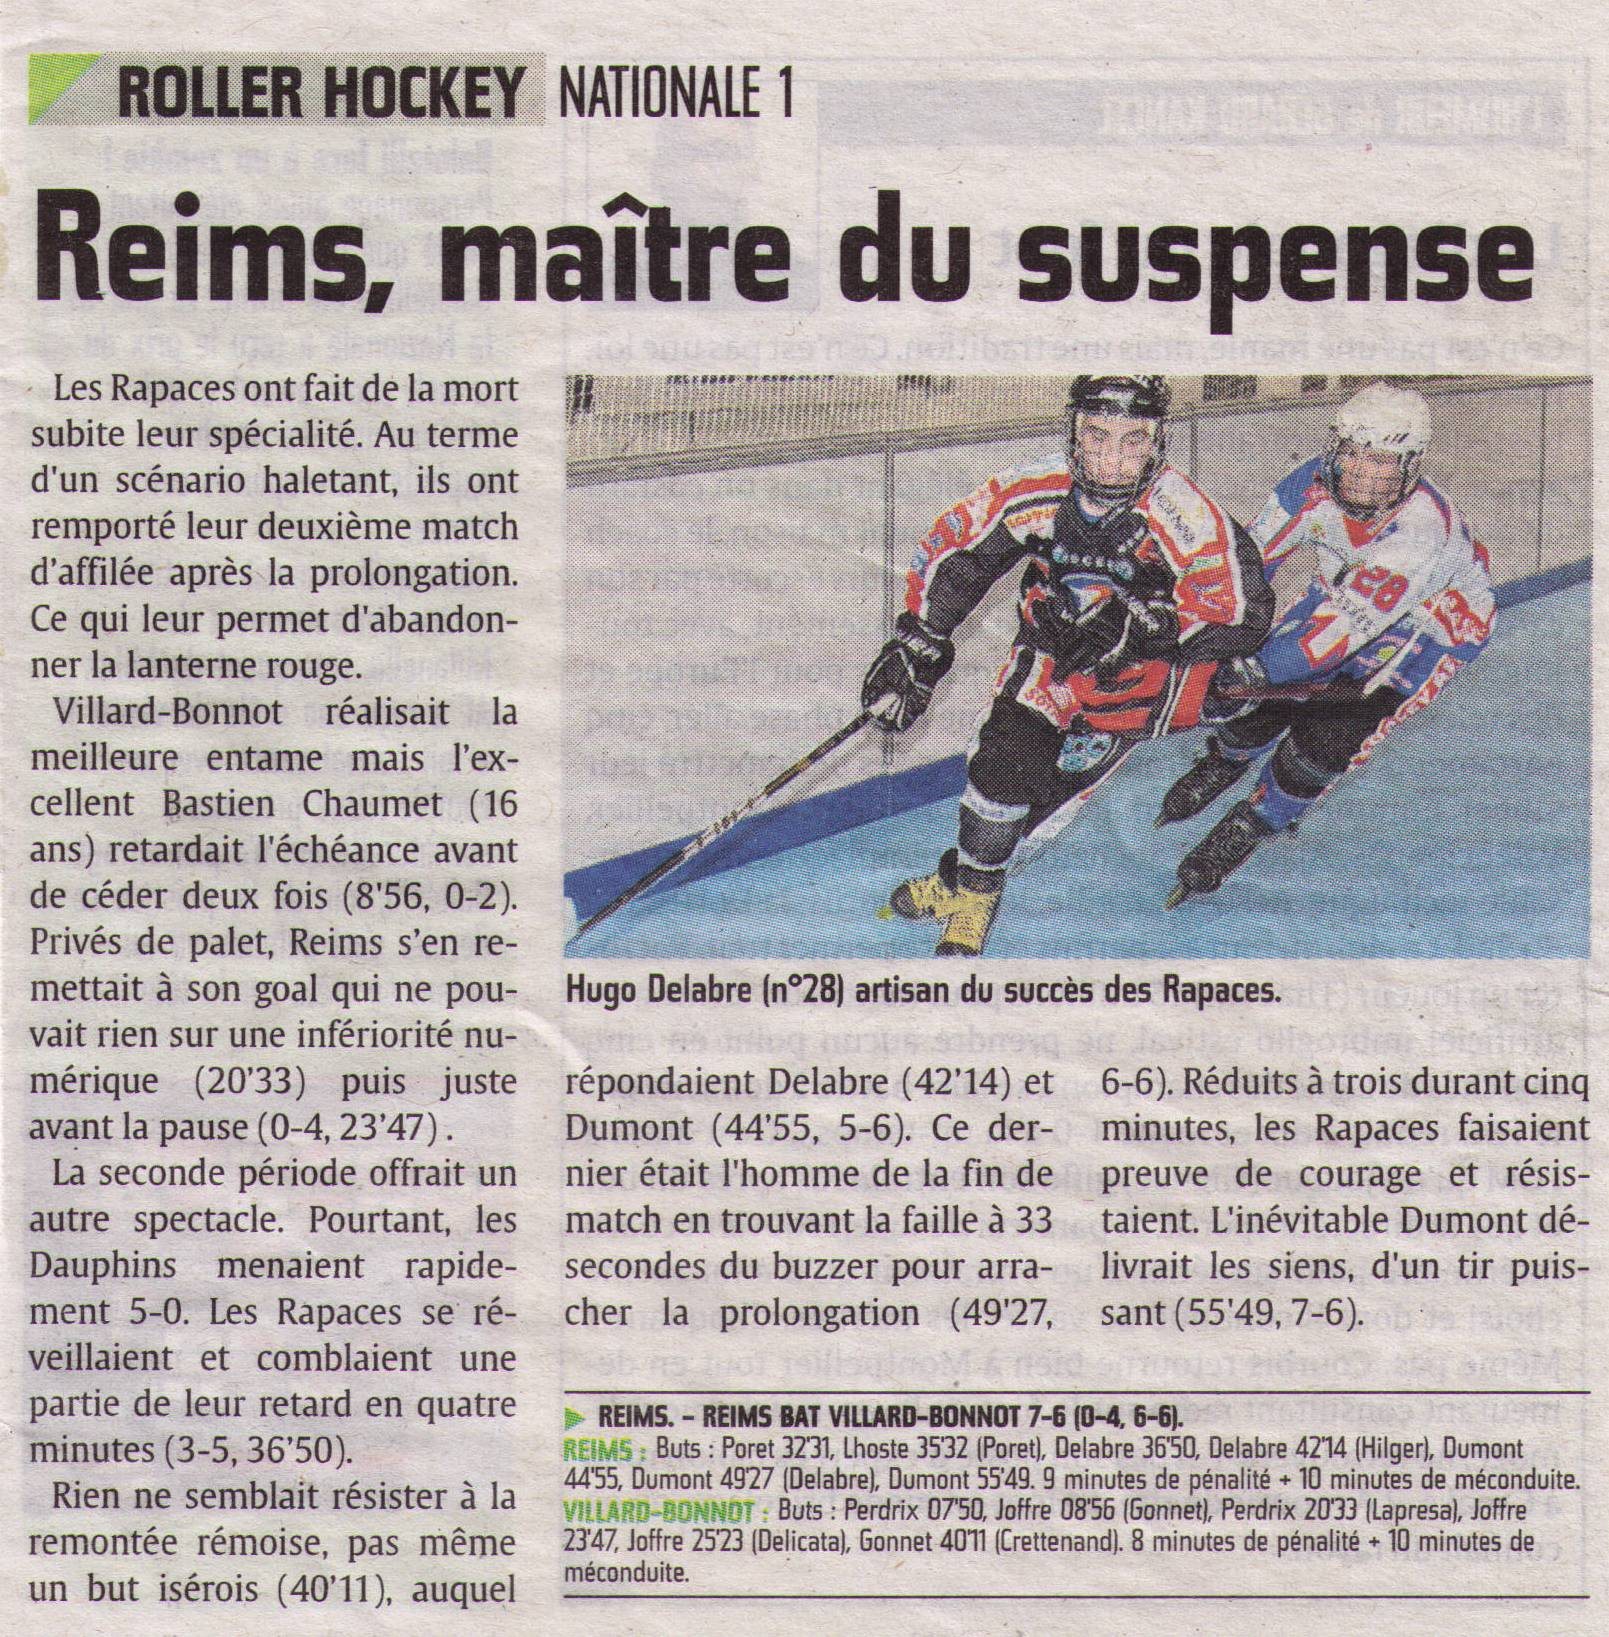 2013-12-08-N1-RHR vs VILLARD-BONNOT